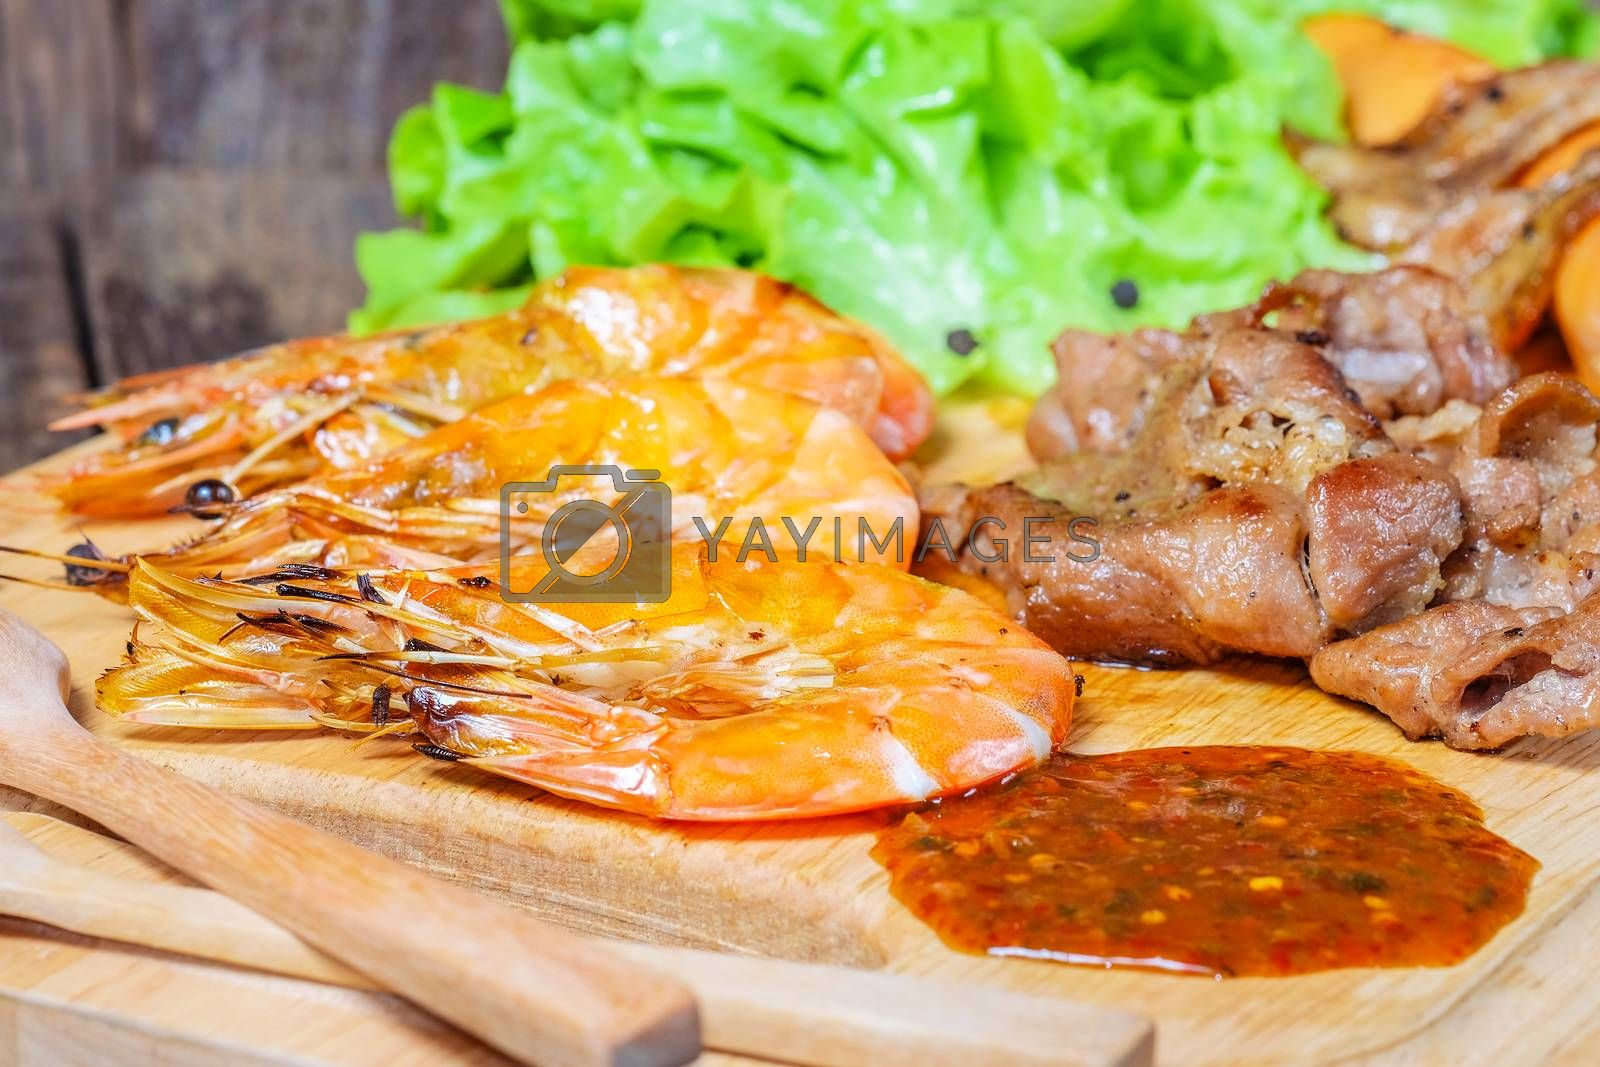 Grilled meat and shrimps with vegetables, barbecue grill food on wood background